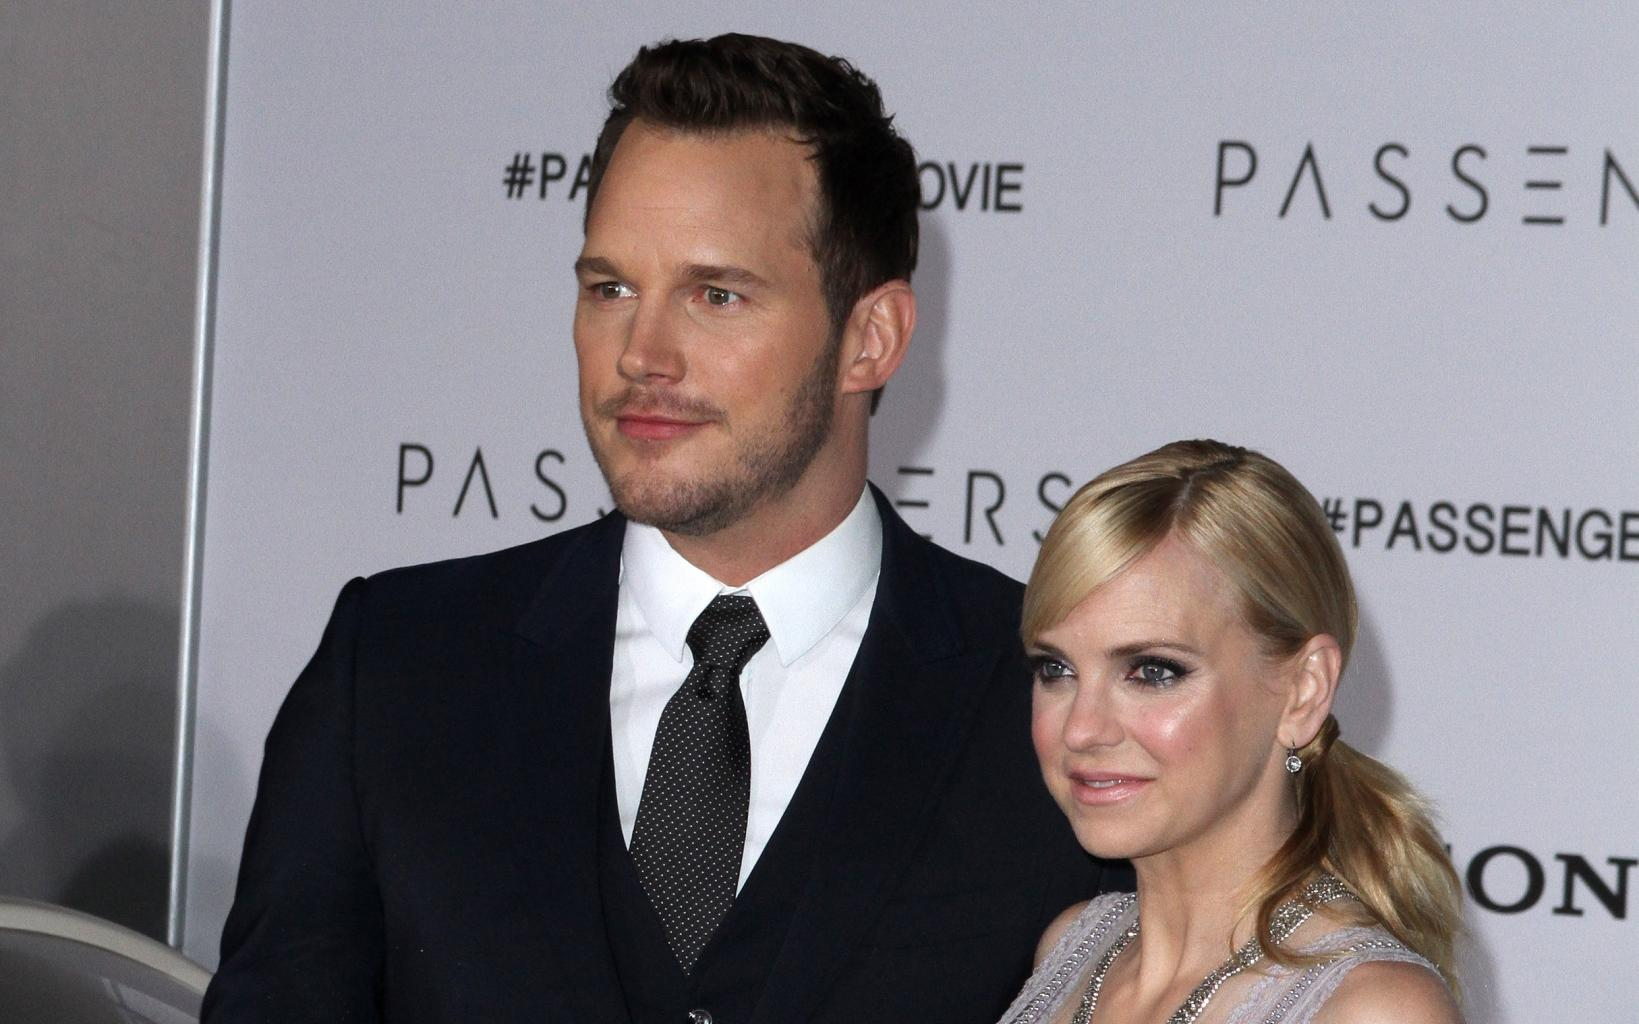 Anna Faris Marvels At Chris Pratt At 'Gotg 2' Premiere: 'I've Always Known He's A Brilliant Actor'